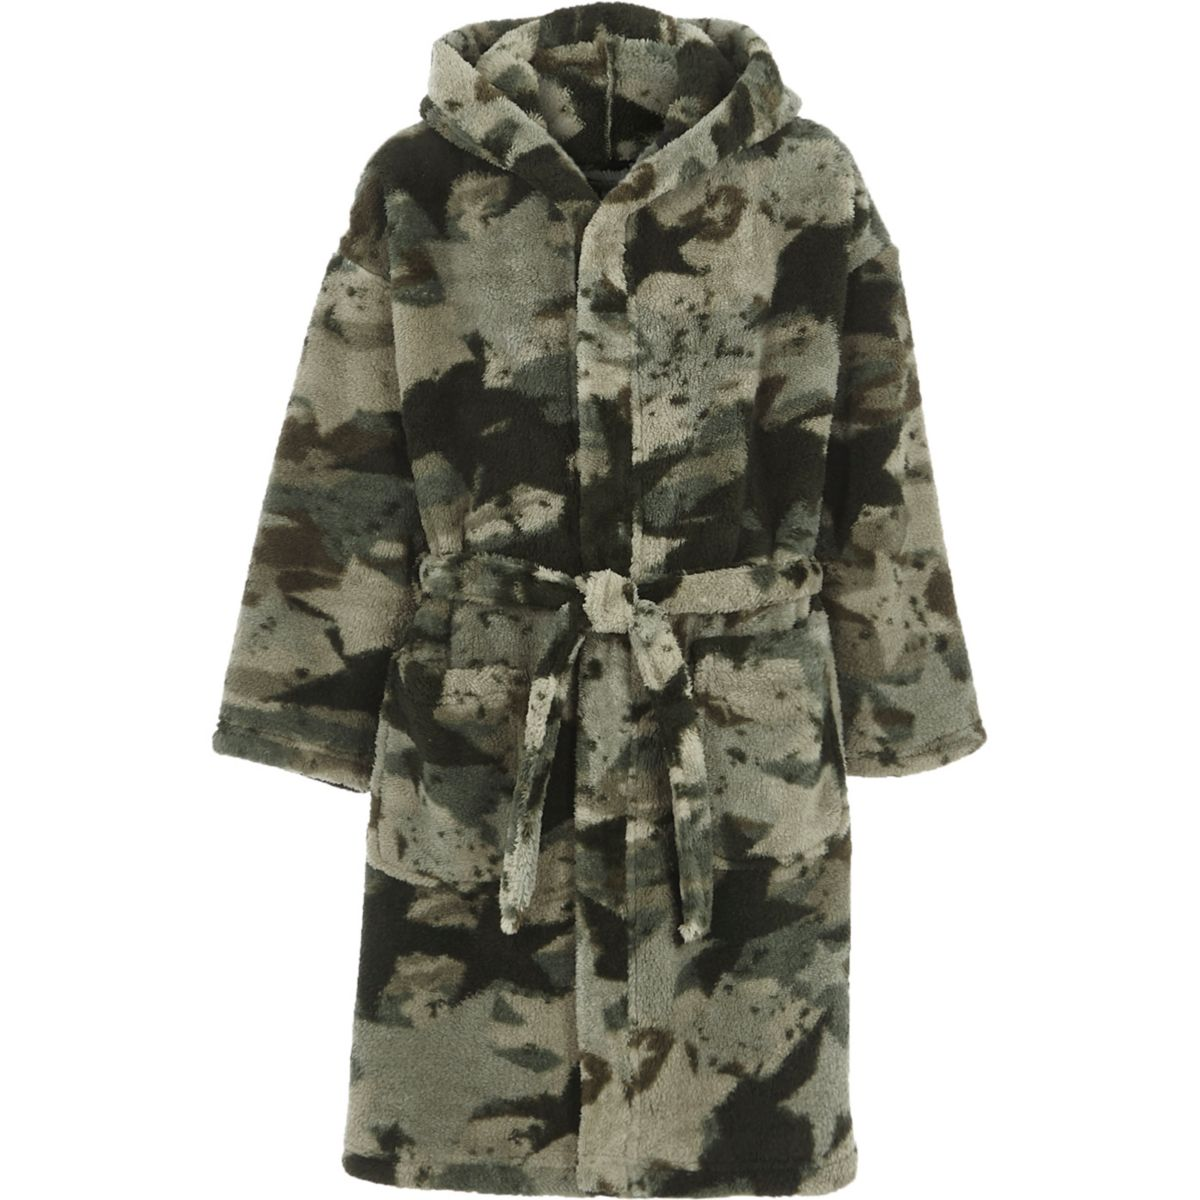 Boys green camo fluffy dressing gown